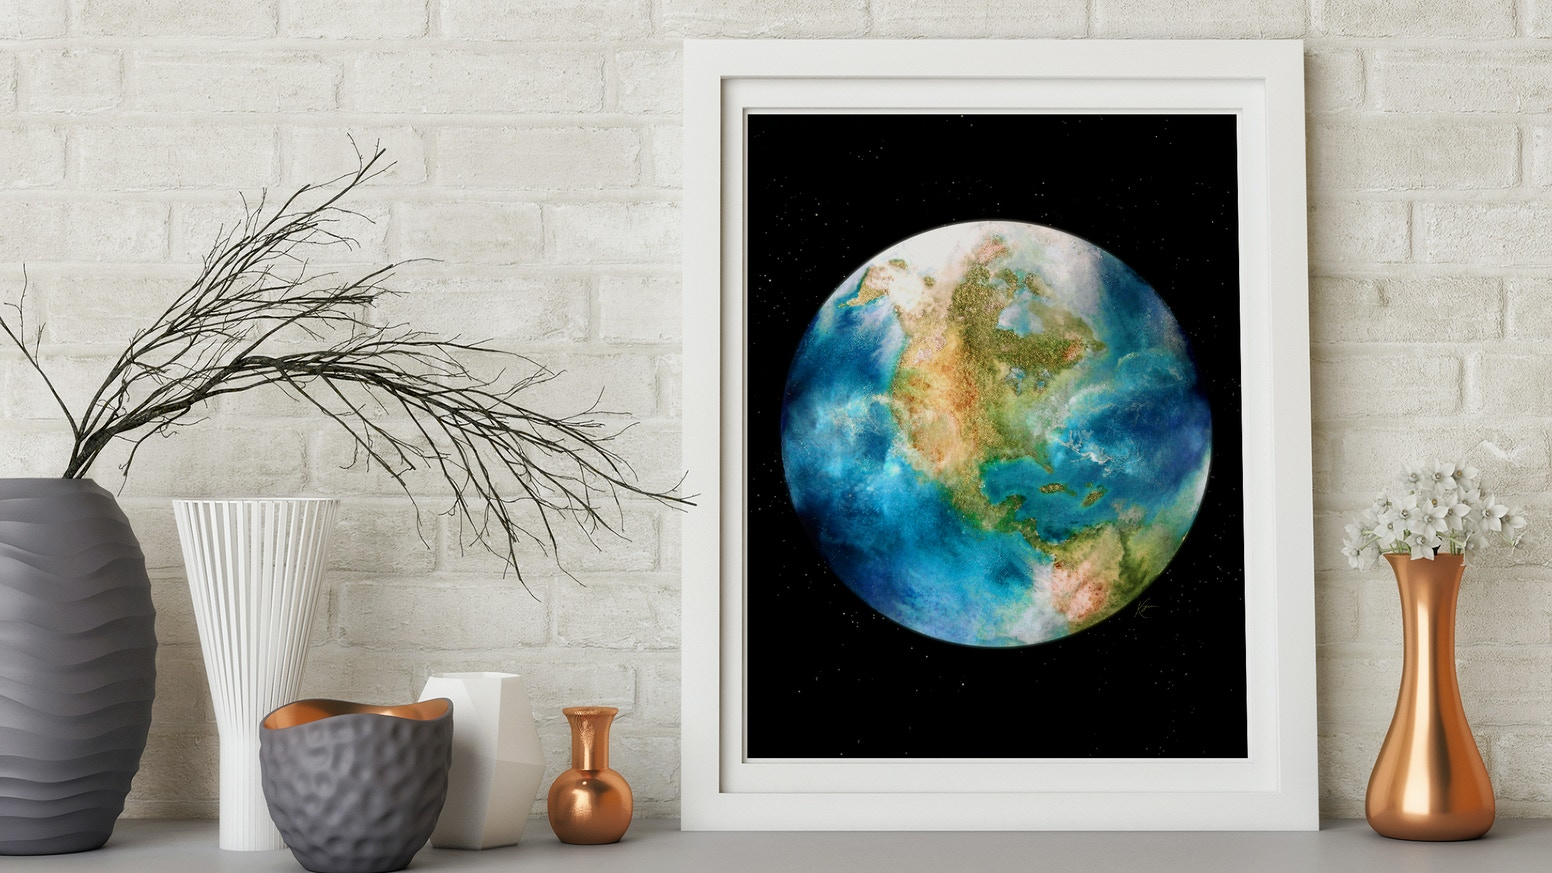 A collection of circular artwork focusing on the colors and textures on every facet of our Pale Blue Dot. Additional funds and stretch goals also brought us: Sun, Moon, Eclipse, South Pole of Jupiter, Milky Way Galaxy, and the planets.